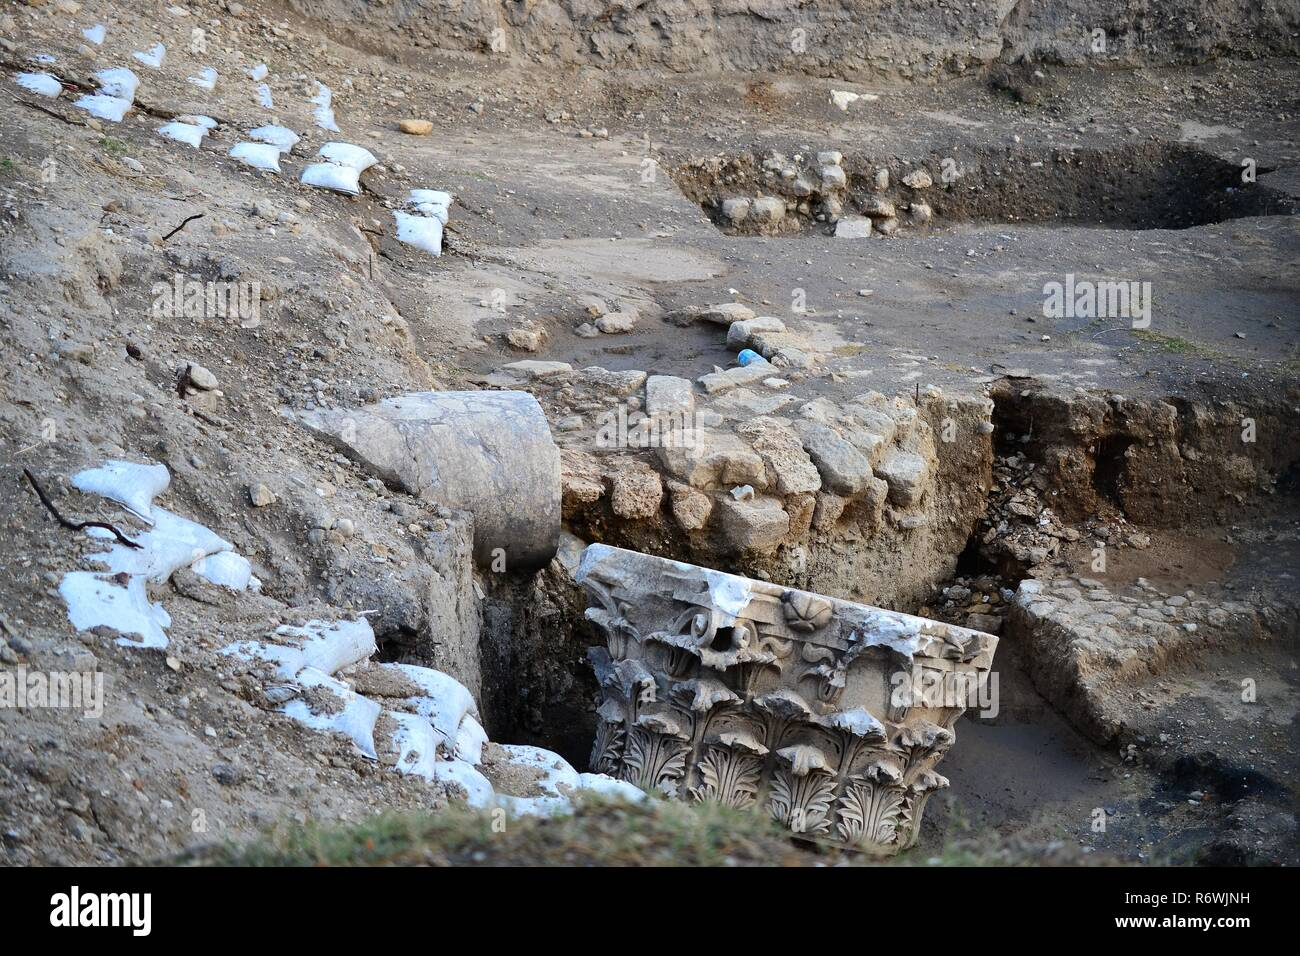 Archaeology class visiting ruins of Ancient and Biblical City of Ashkelon in Israel, Holy Land - Stock Image